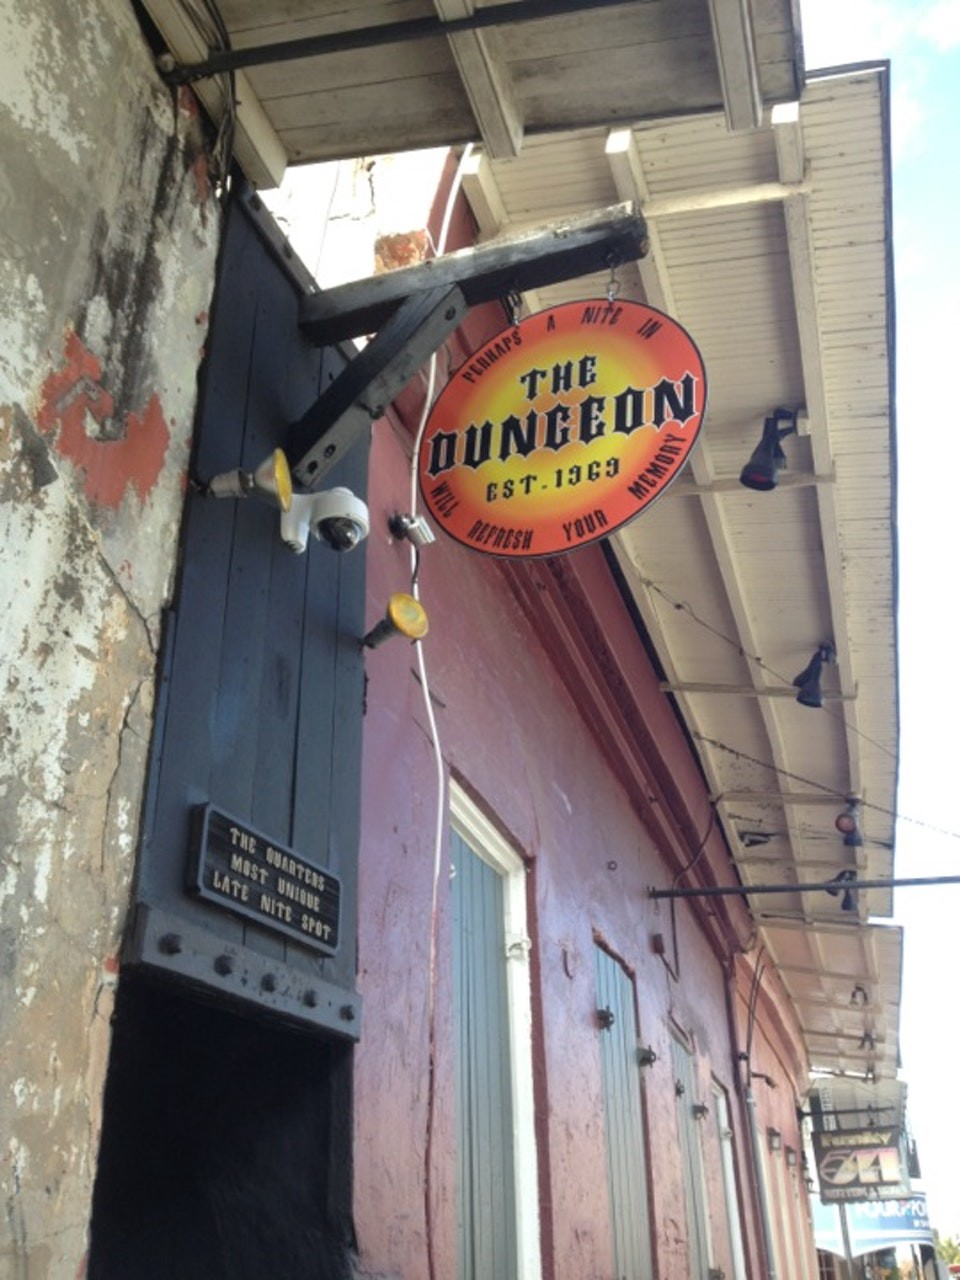 Ye Old Original Dungeon dive bar